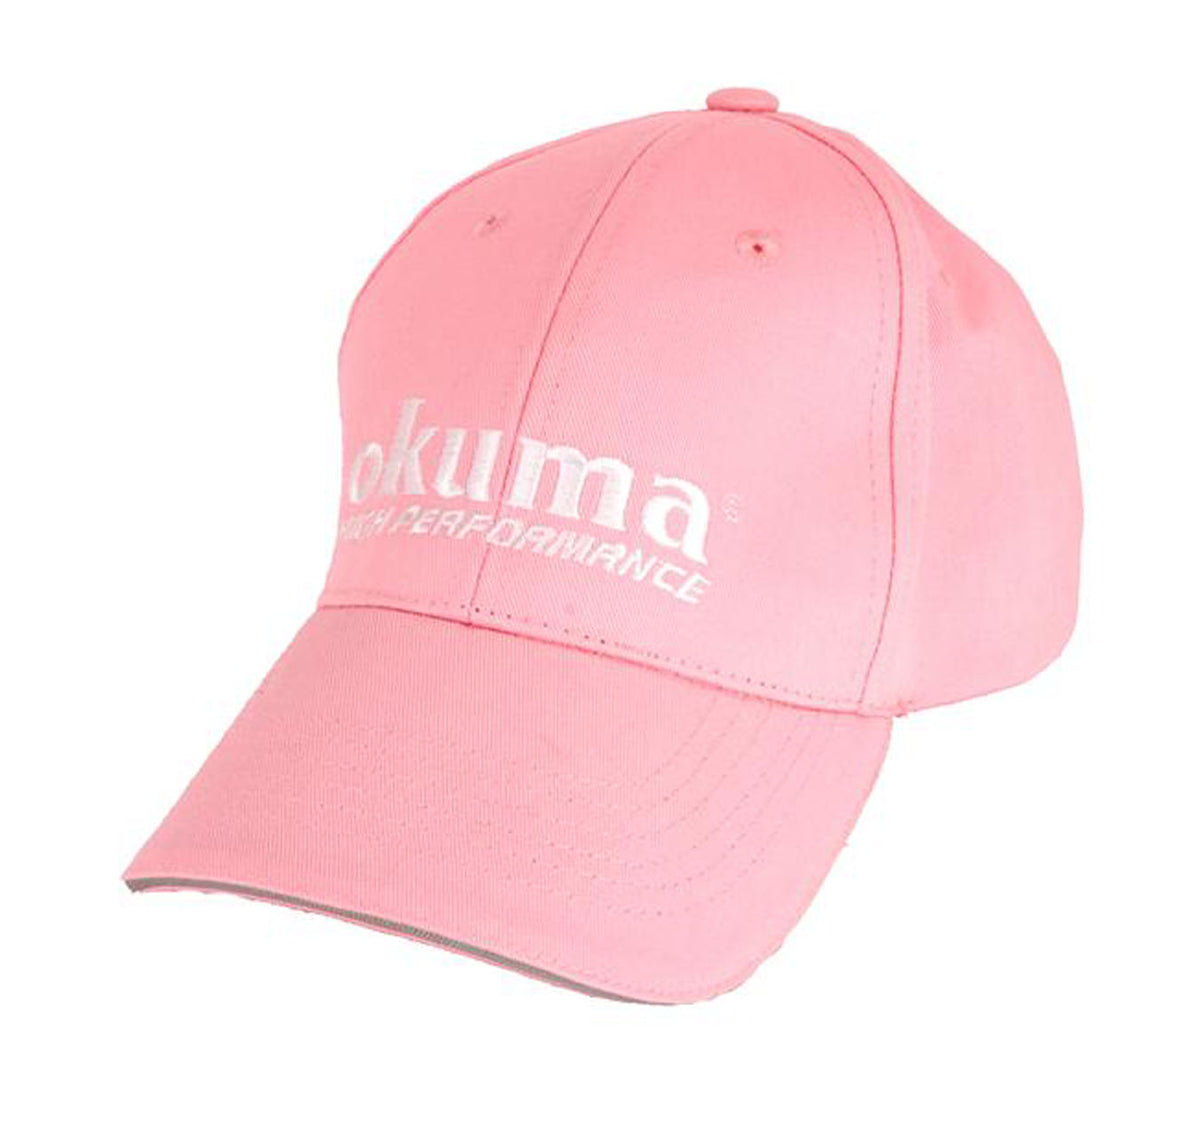 Okuma Pink High Performance Cap